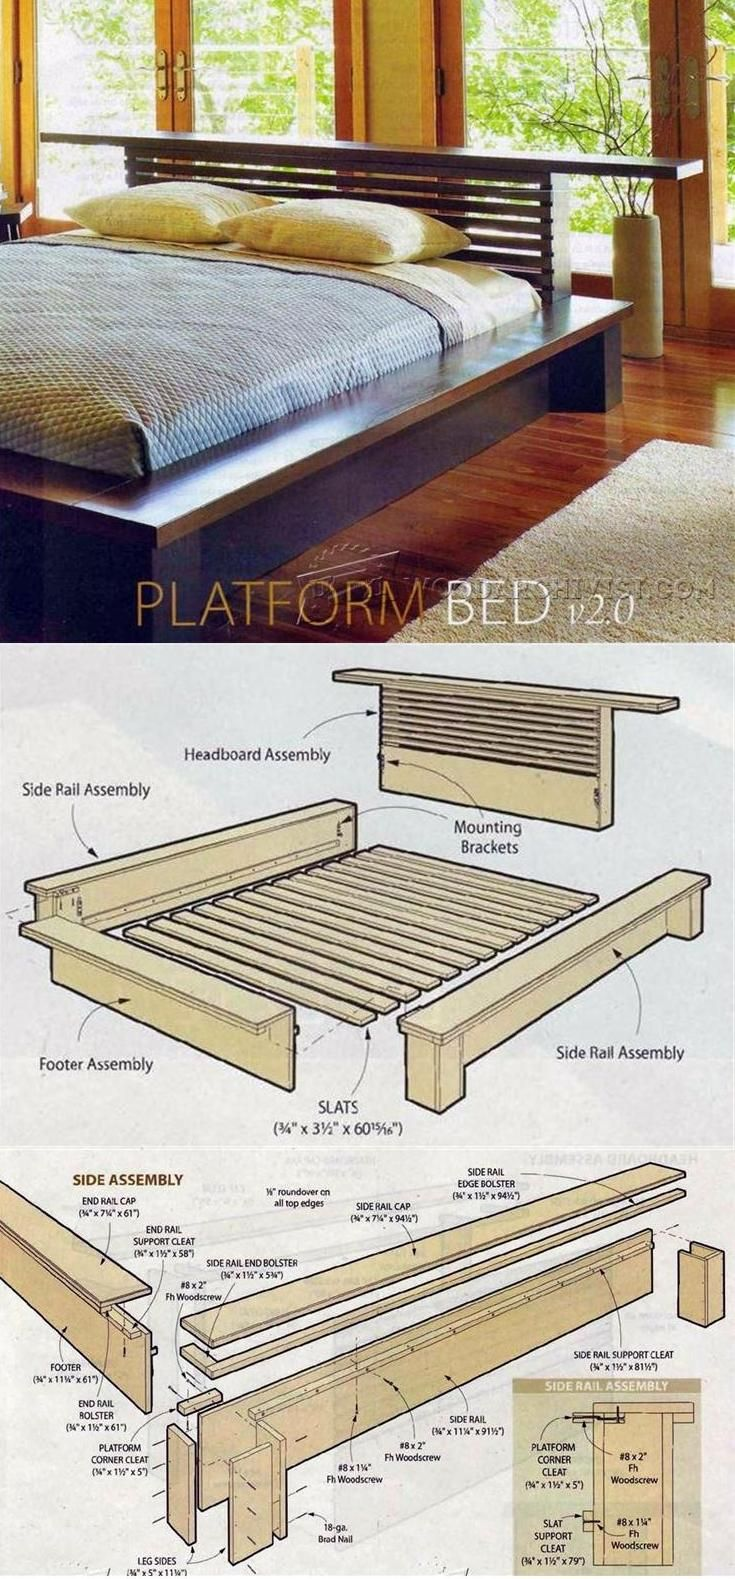 Platform bed plans furniture plans and projects woodarchivist custom woodworking plans tools needed for woodworking shopbedroom furniture plans diy outdoor furniture planstiny wood projects do it yourself kitchen solutioingenieria Image collections